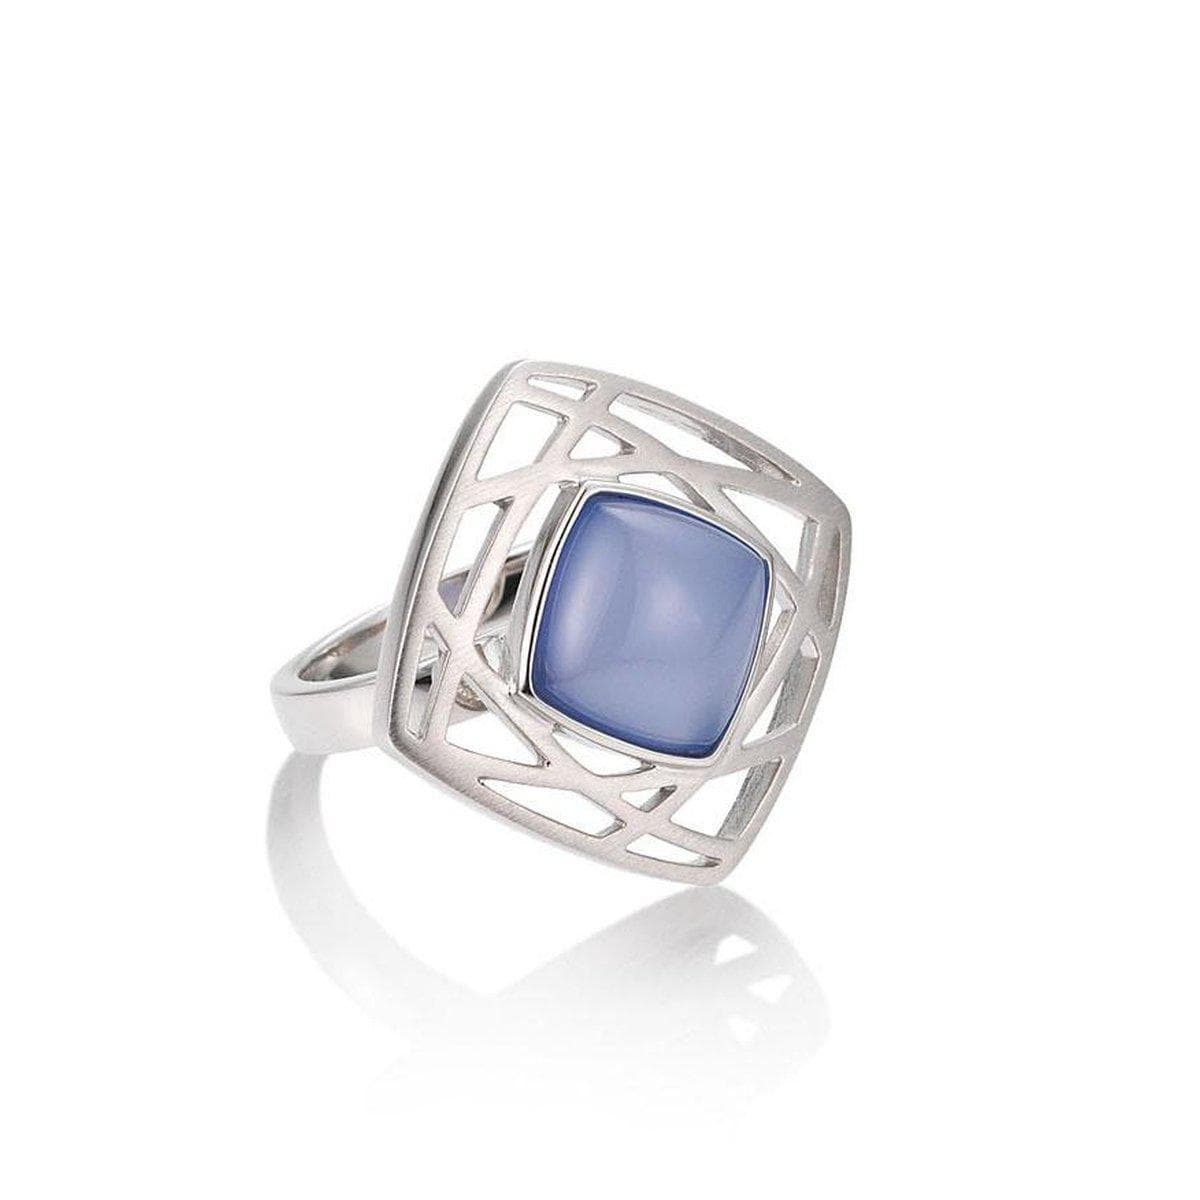 Sterling Silver Chalcedony Ring - 42/03227-Breuning-Renee Taylor Gallery